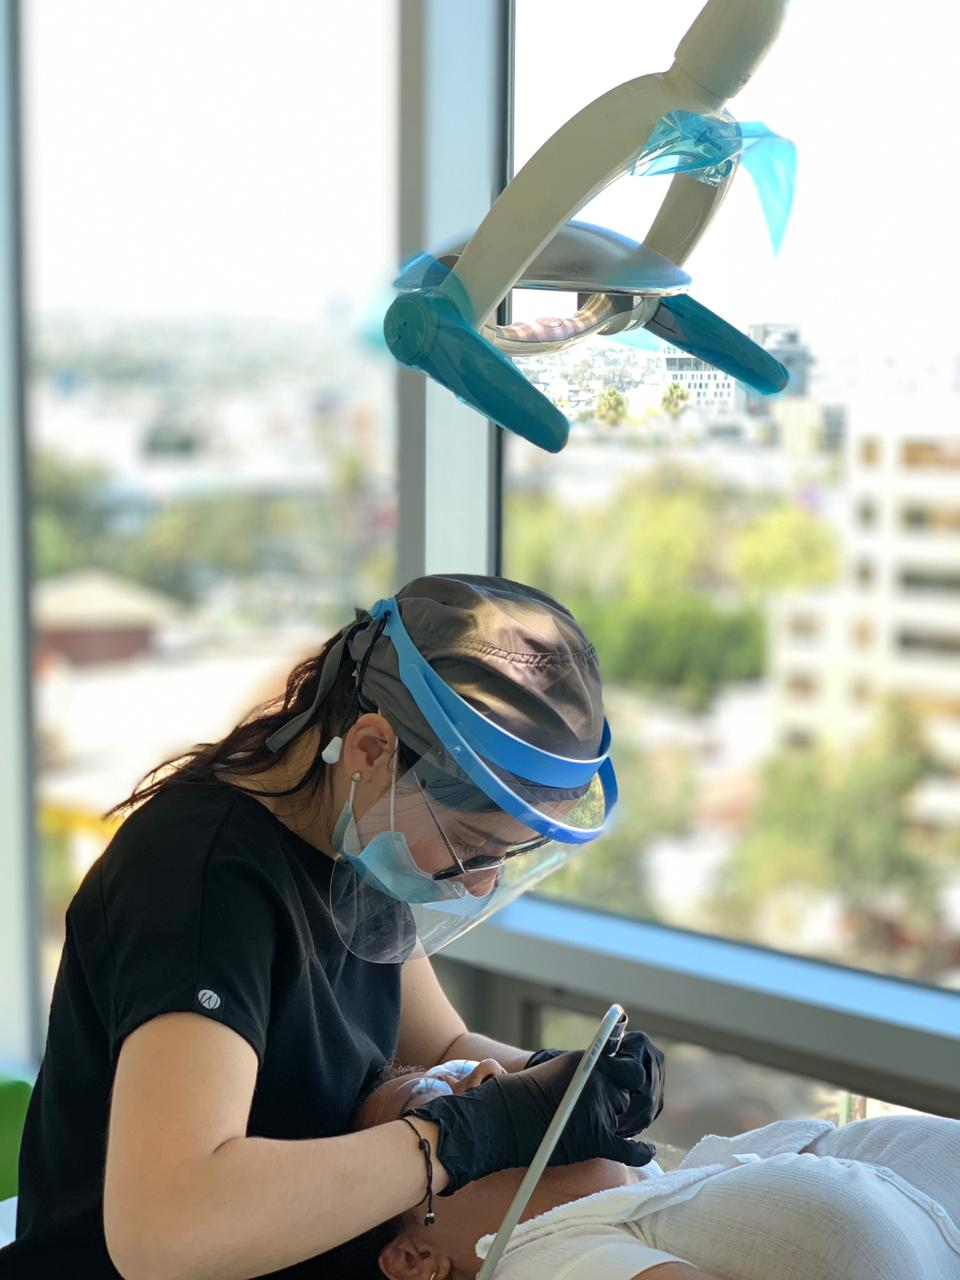 Dr. Silvia Guzman taking care of a patient. Cosmetic dentistry treatment in Tijuana